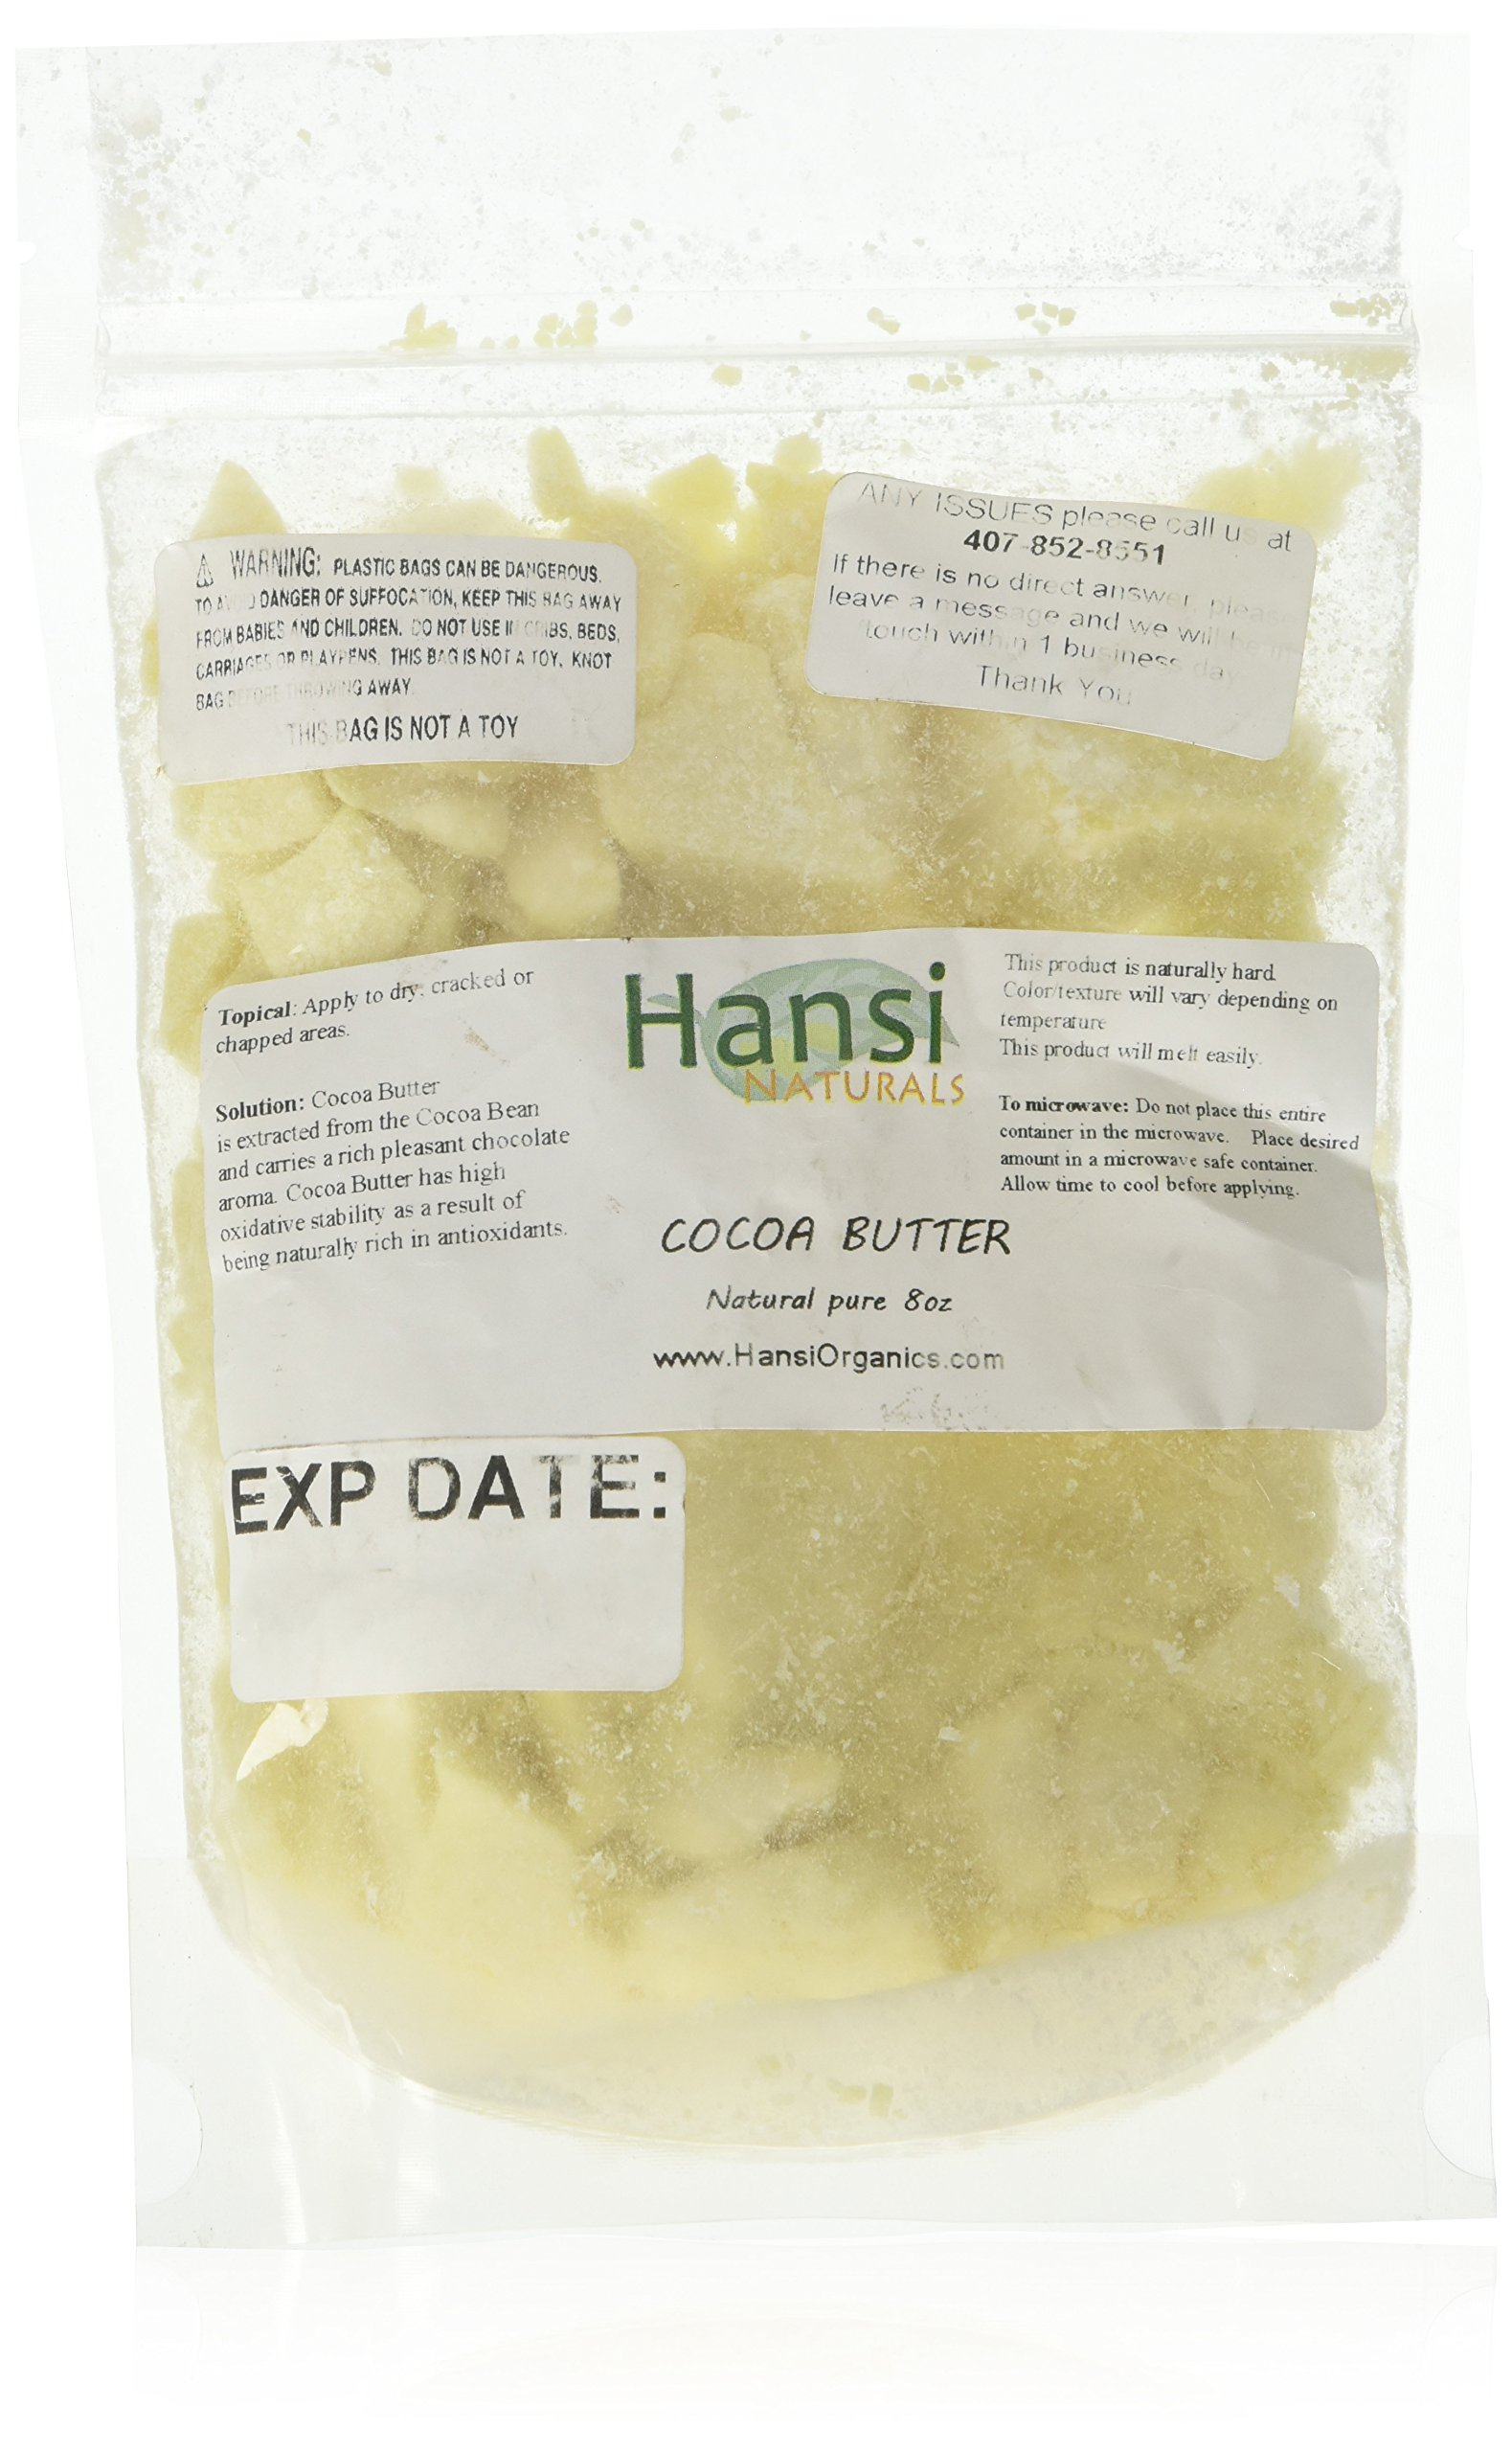 Raw Cocoa Butter 100% Pure 8oz ** SEALED BAG TO ENSURE FRESHNESS** by smellgood